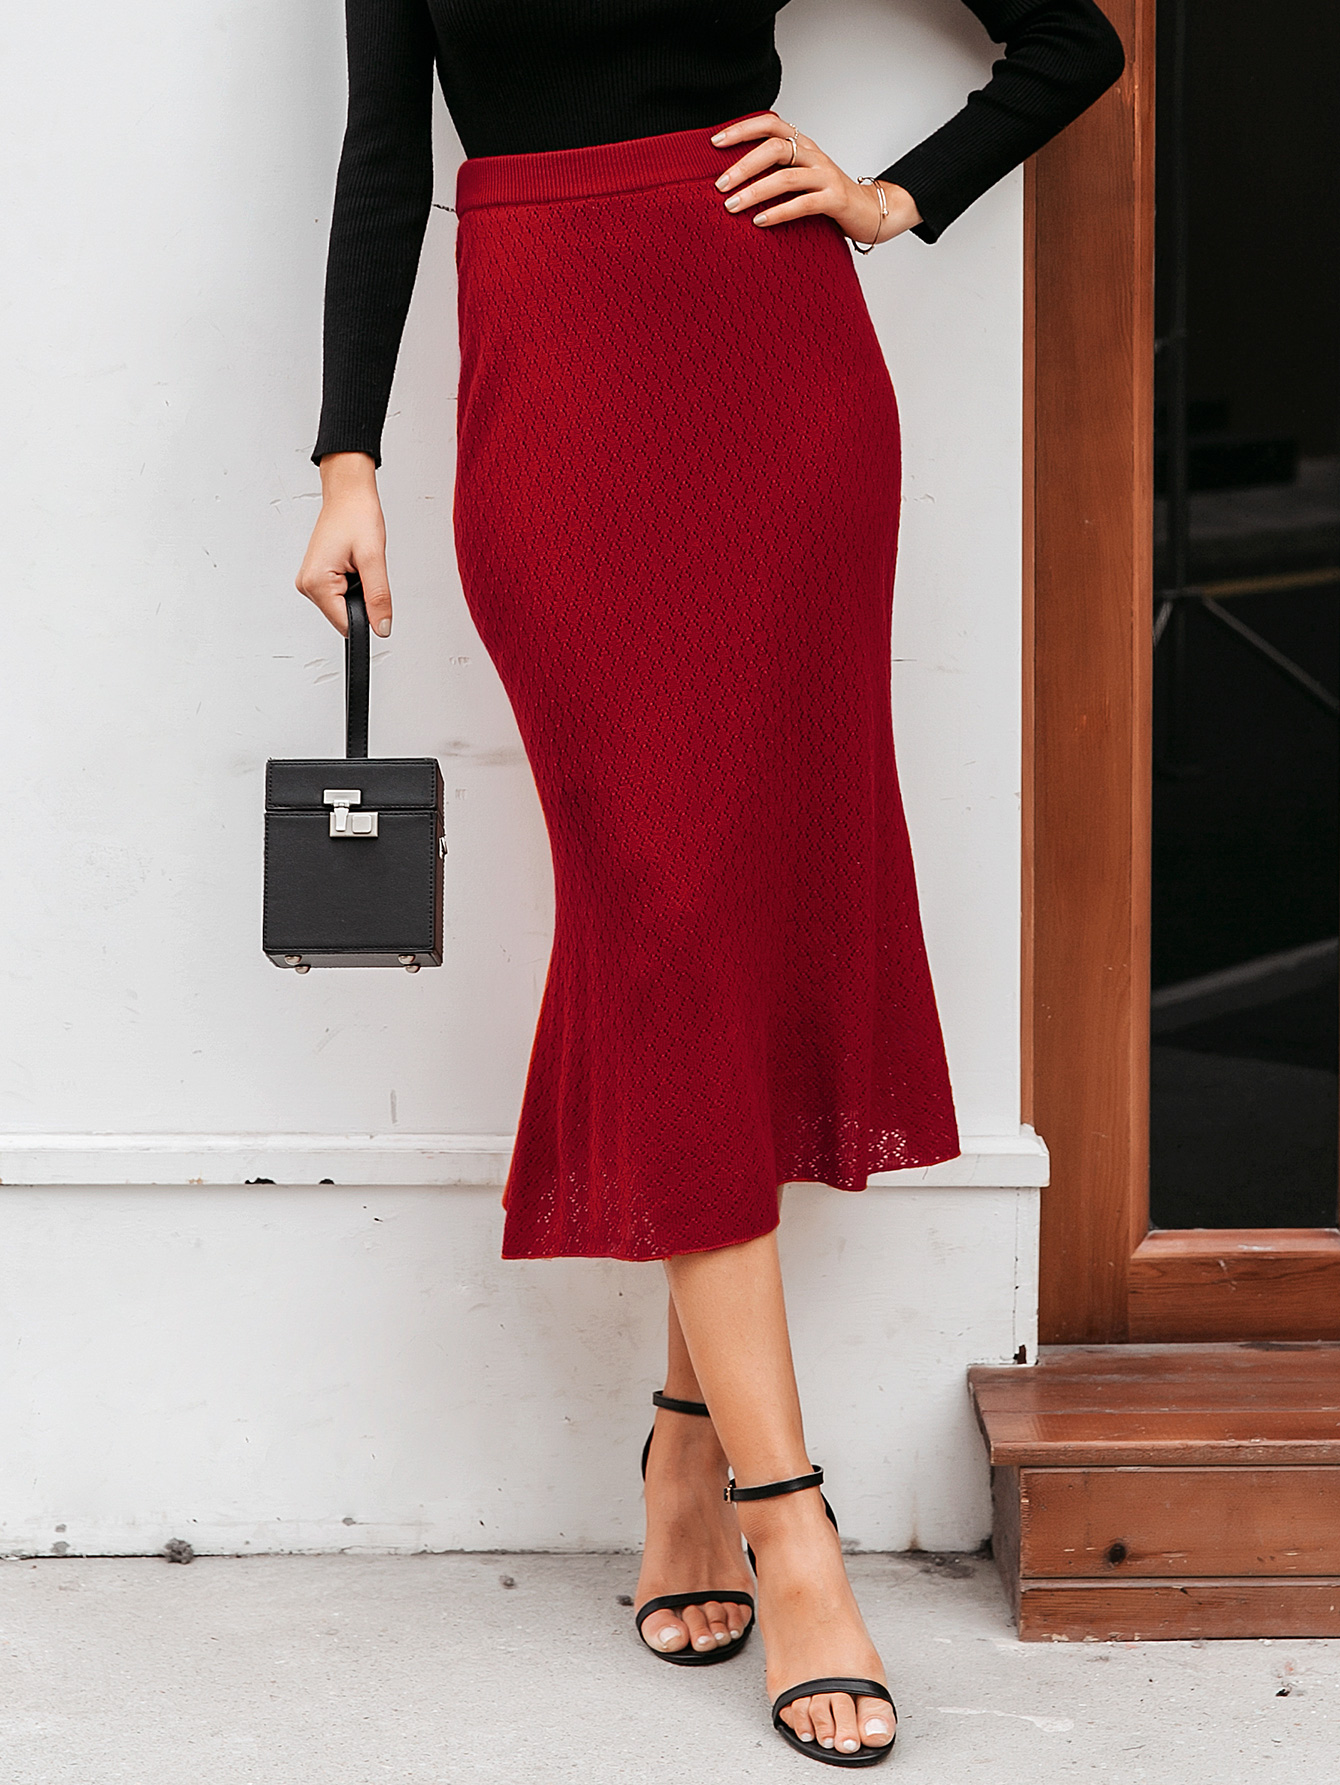 2019 new solid color sexy skirt hem skirt fashion women39s wholesale NHDE190222